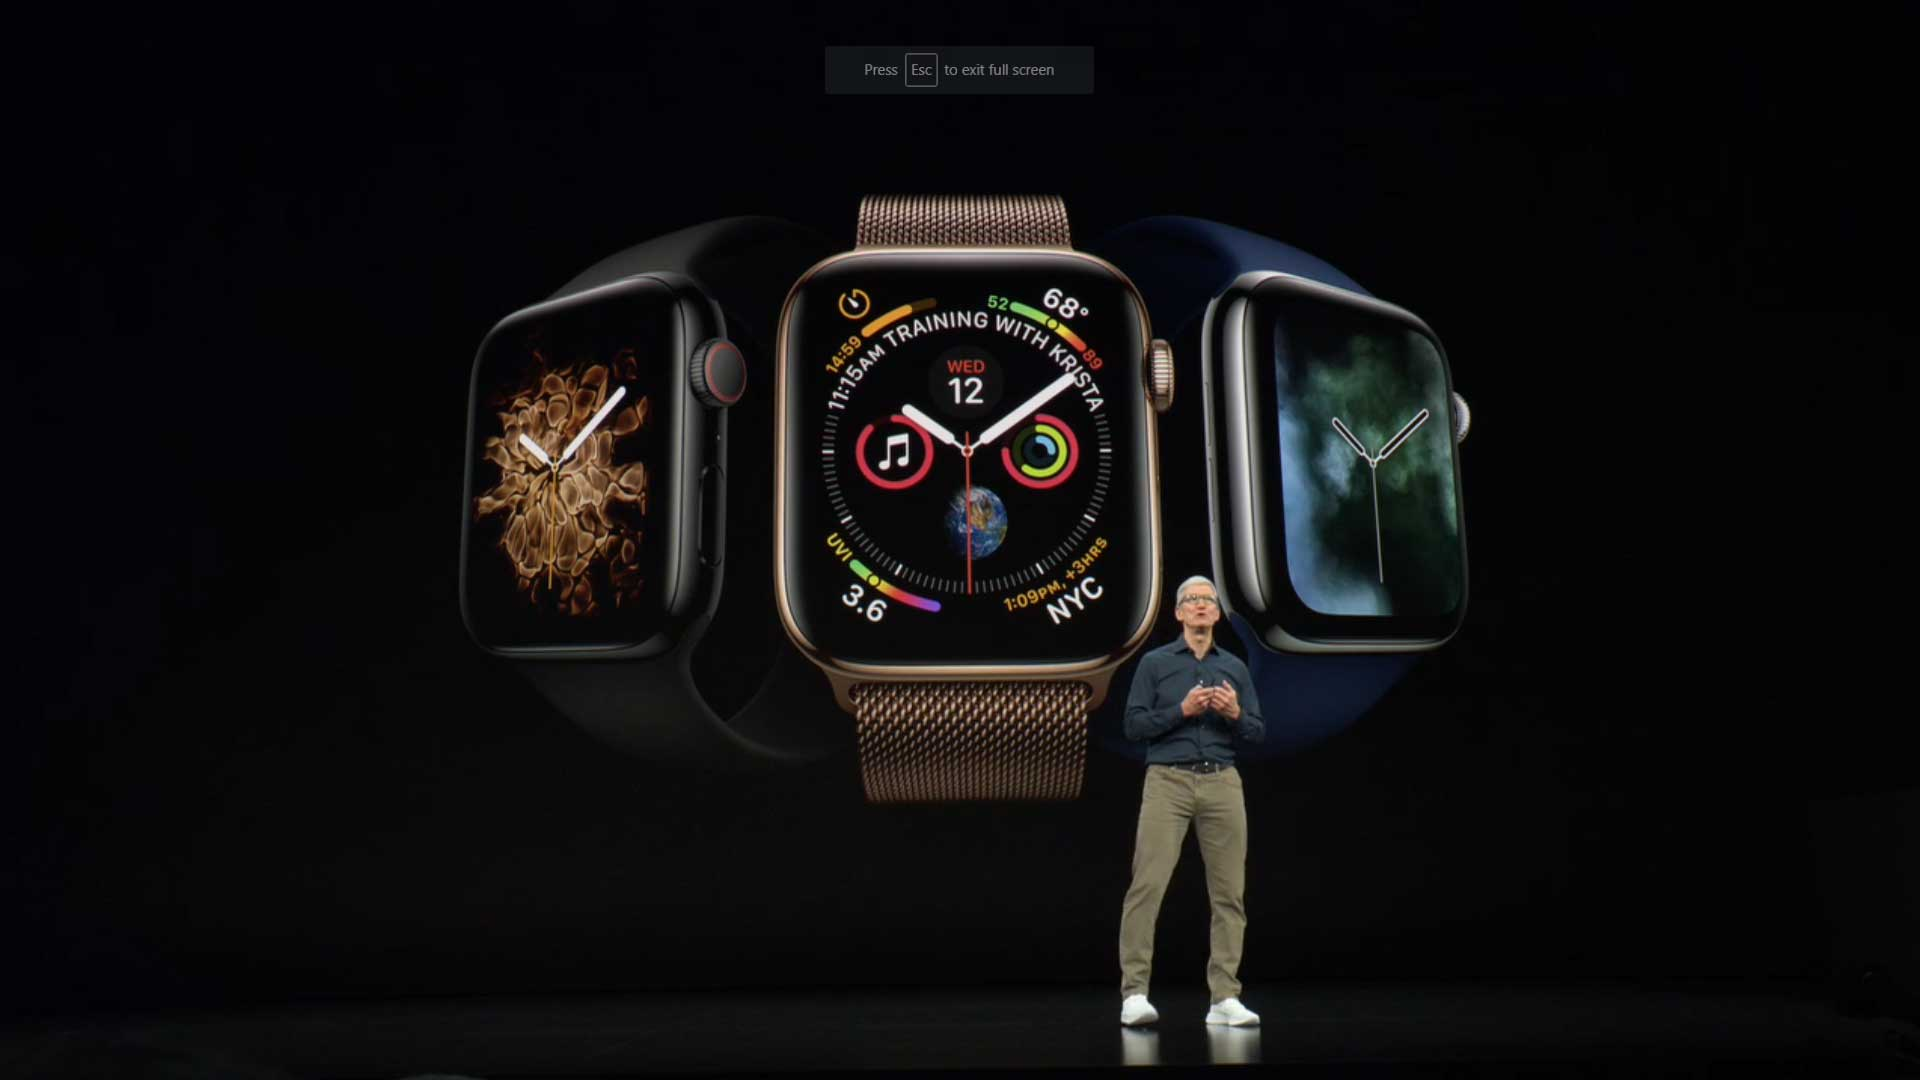 Apple wows at unveiling of Series 4 Watch and iPhone XS, XS Max and